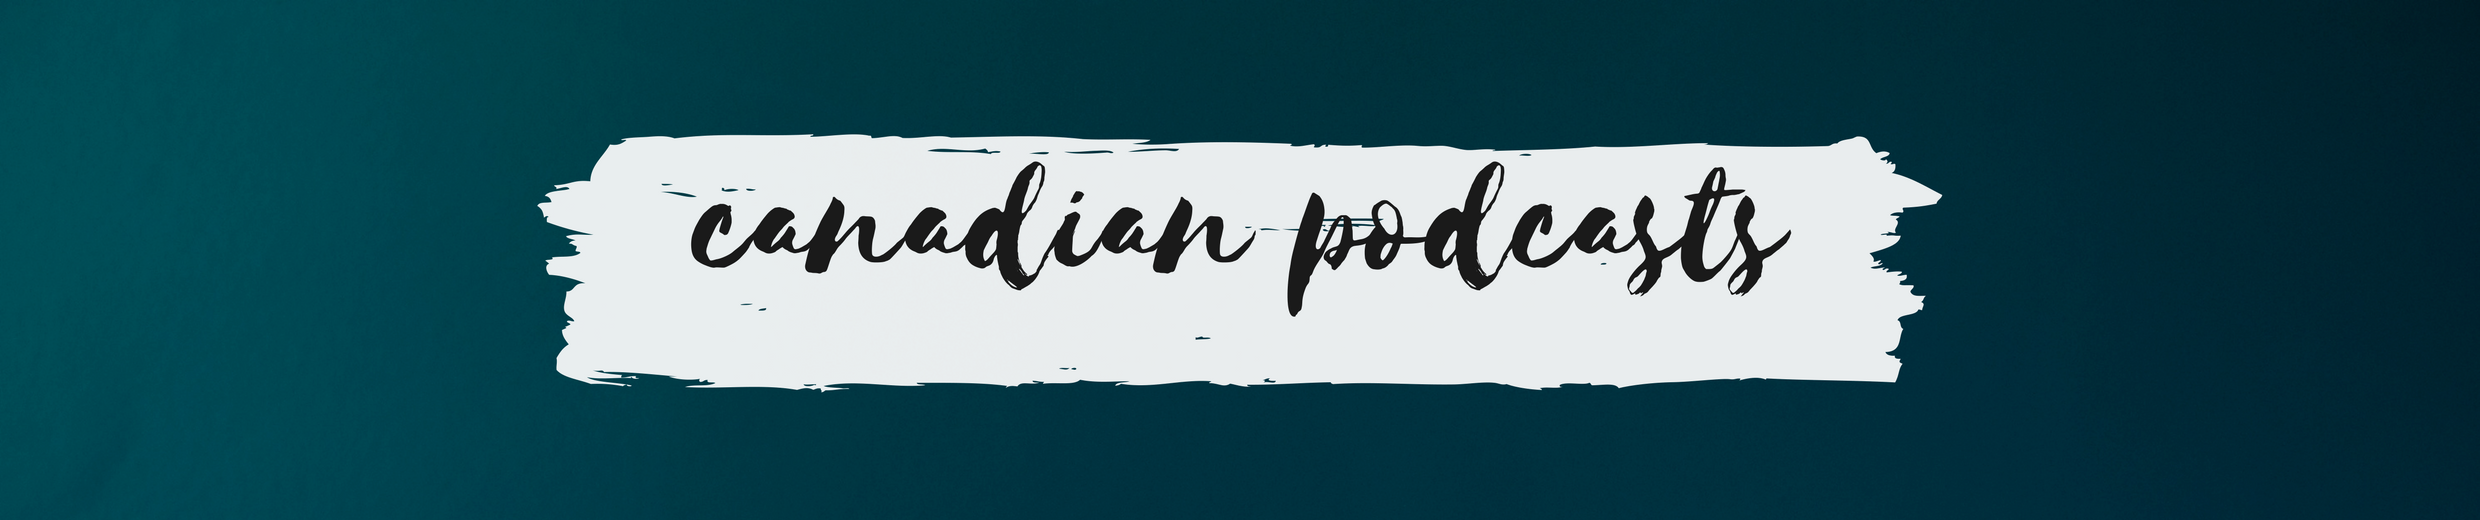 Podcasts for Writers Canadian Podcasts